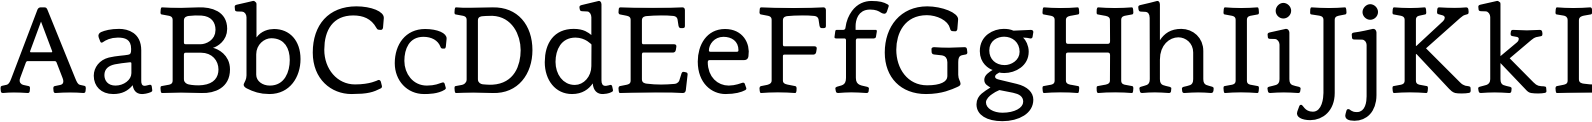 Flembo Text Font